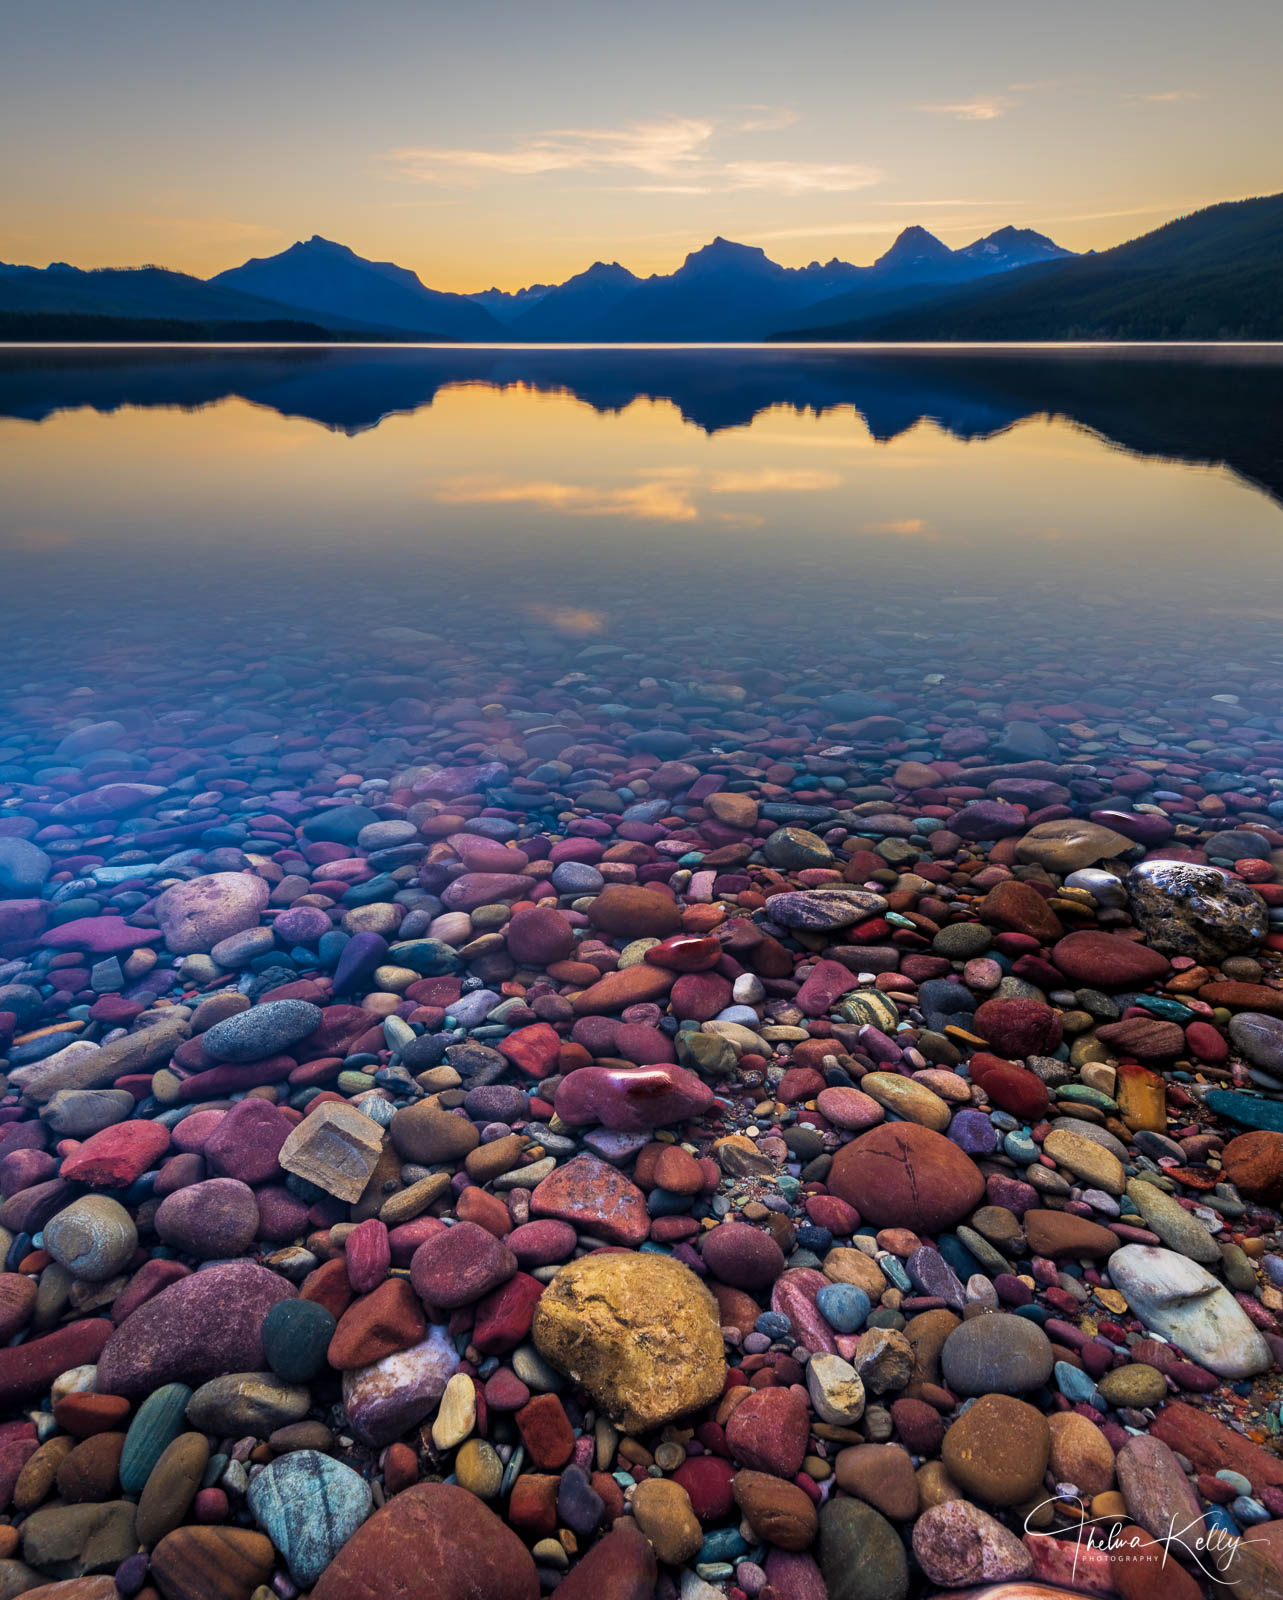 A Limited Edition of 50 A kaleidoscope of colorful rocks adorn the Lake McDonald's shoreline